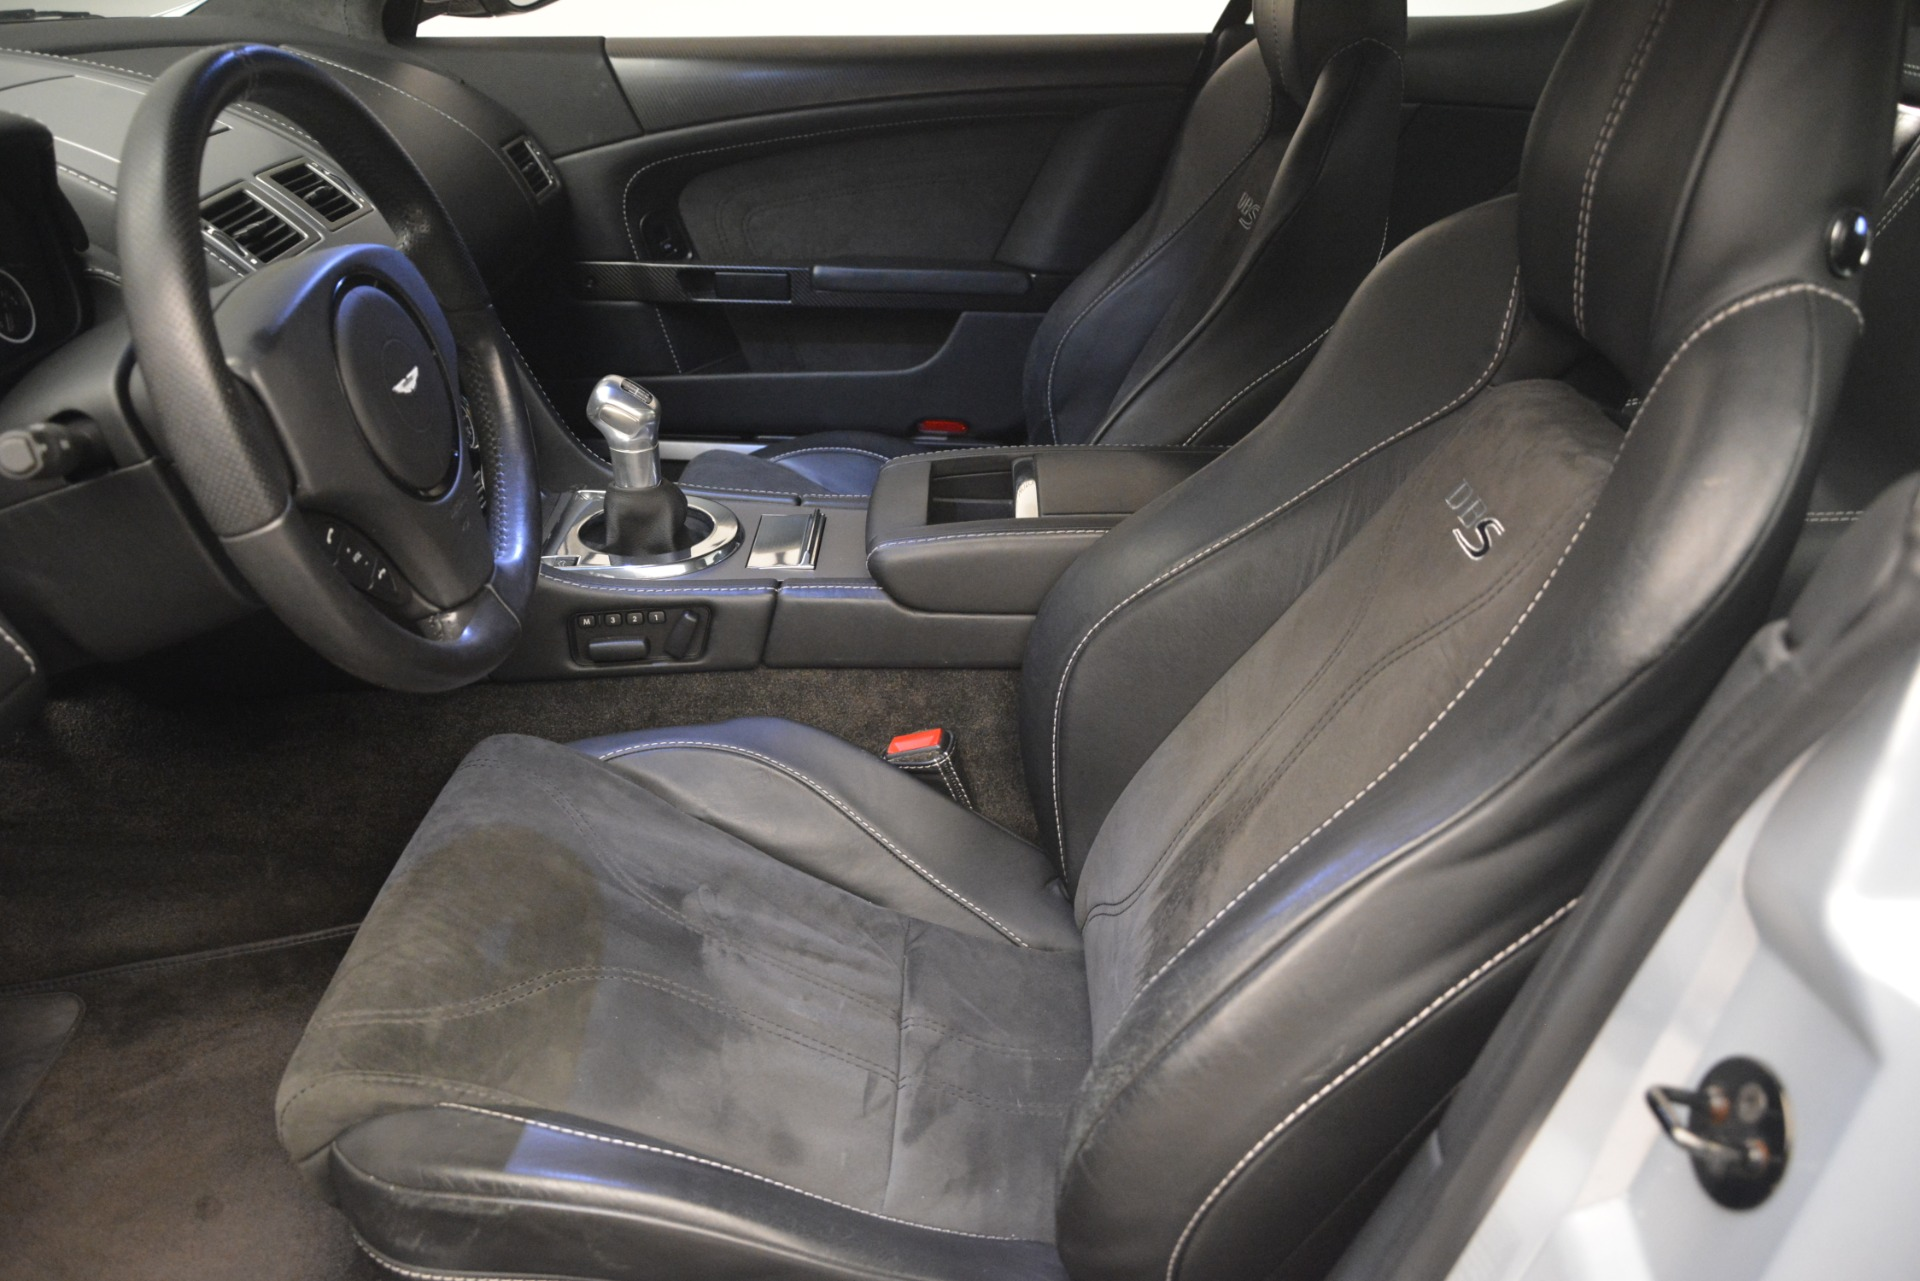 Used 2009 Aston Martin DBS  For Sale In Westport, CT 3033_p19